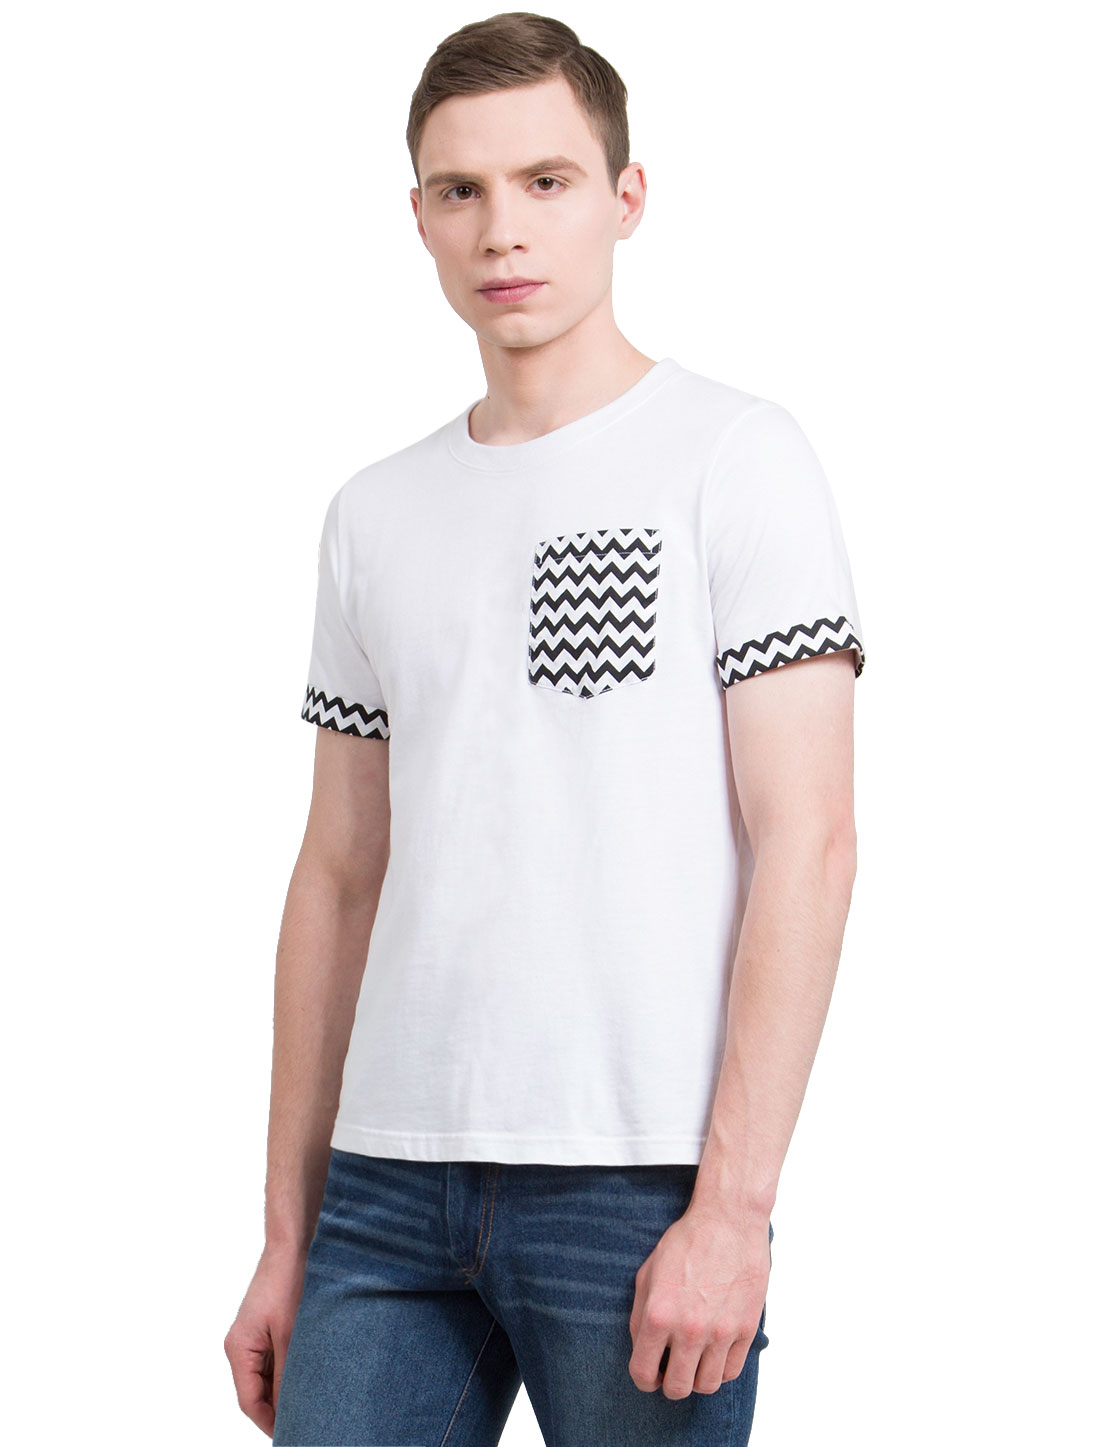 Men Crew Neck Short Sleeves Chevron Print Cotton T-Shirt White M